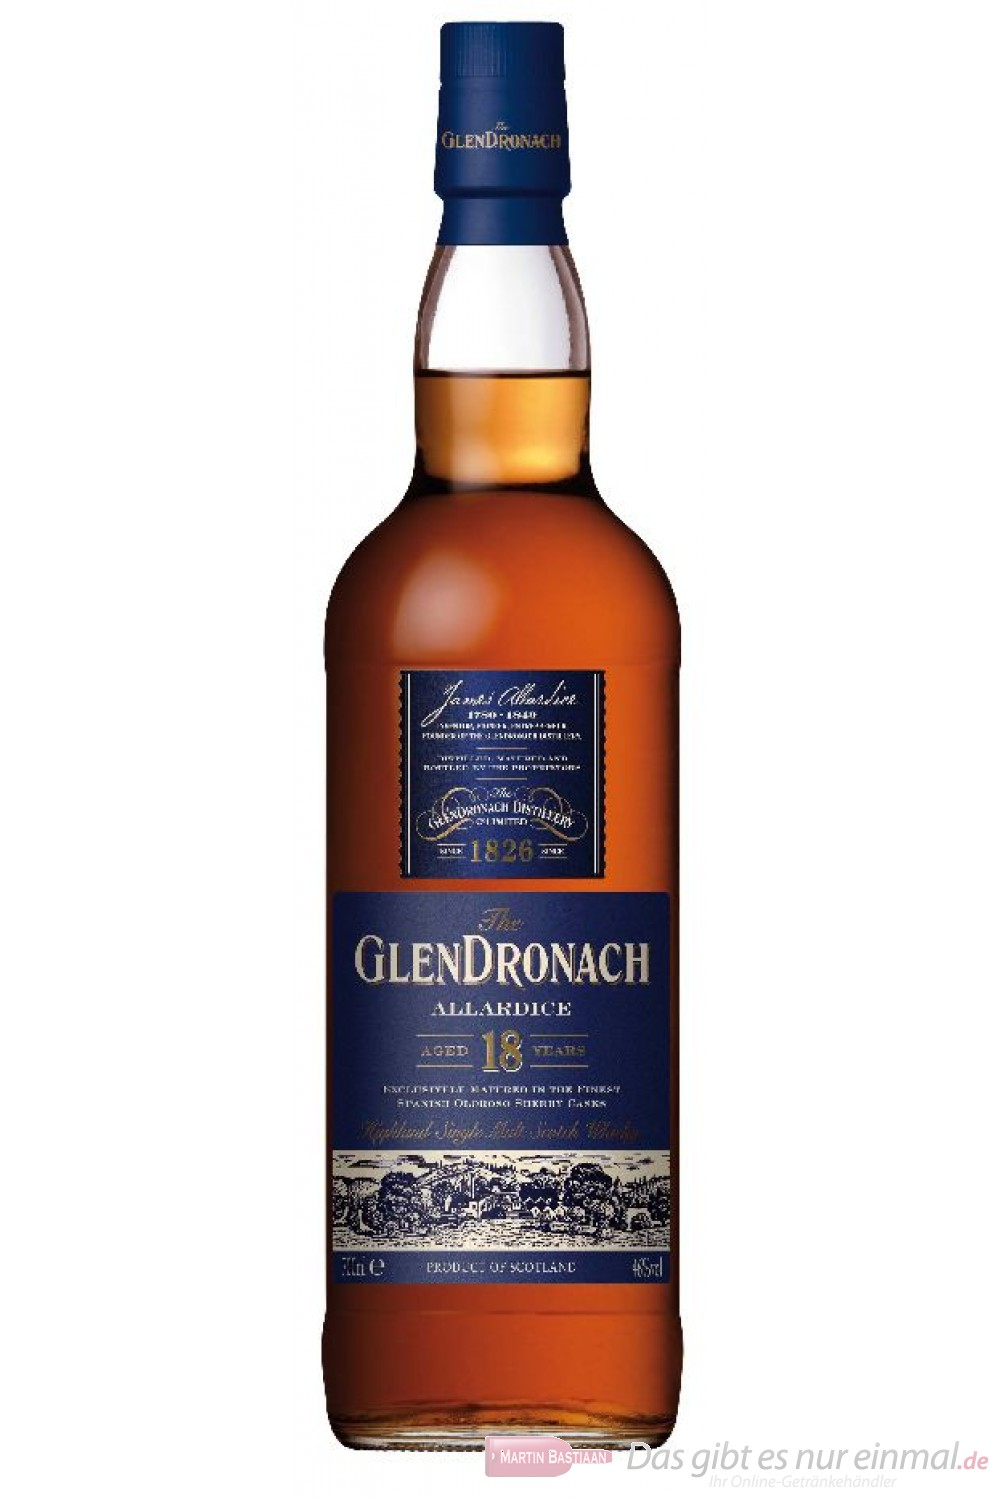 Glendronach 18 Years Allardice Highland Single Malt Scotch Whisky 40% 0,7l Flasche